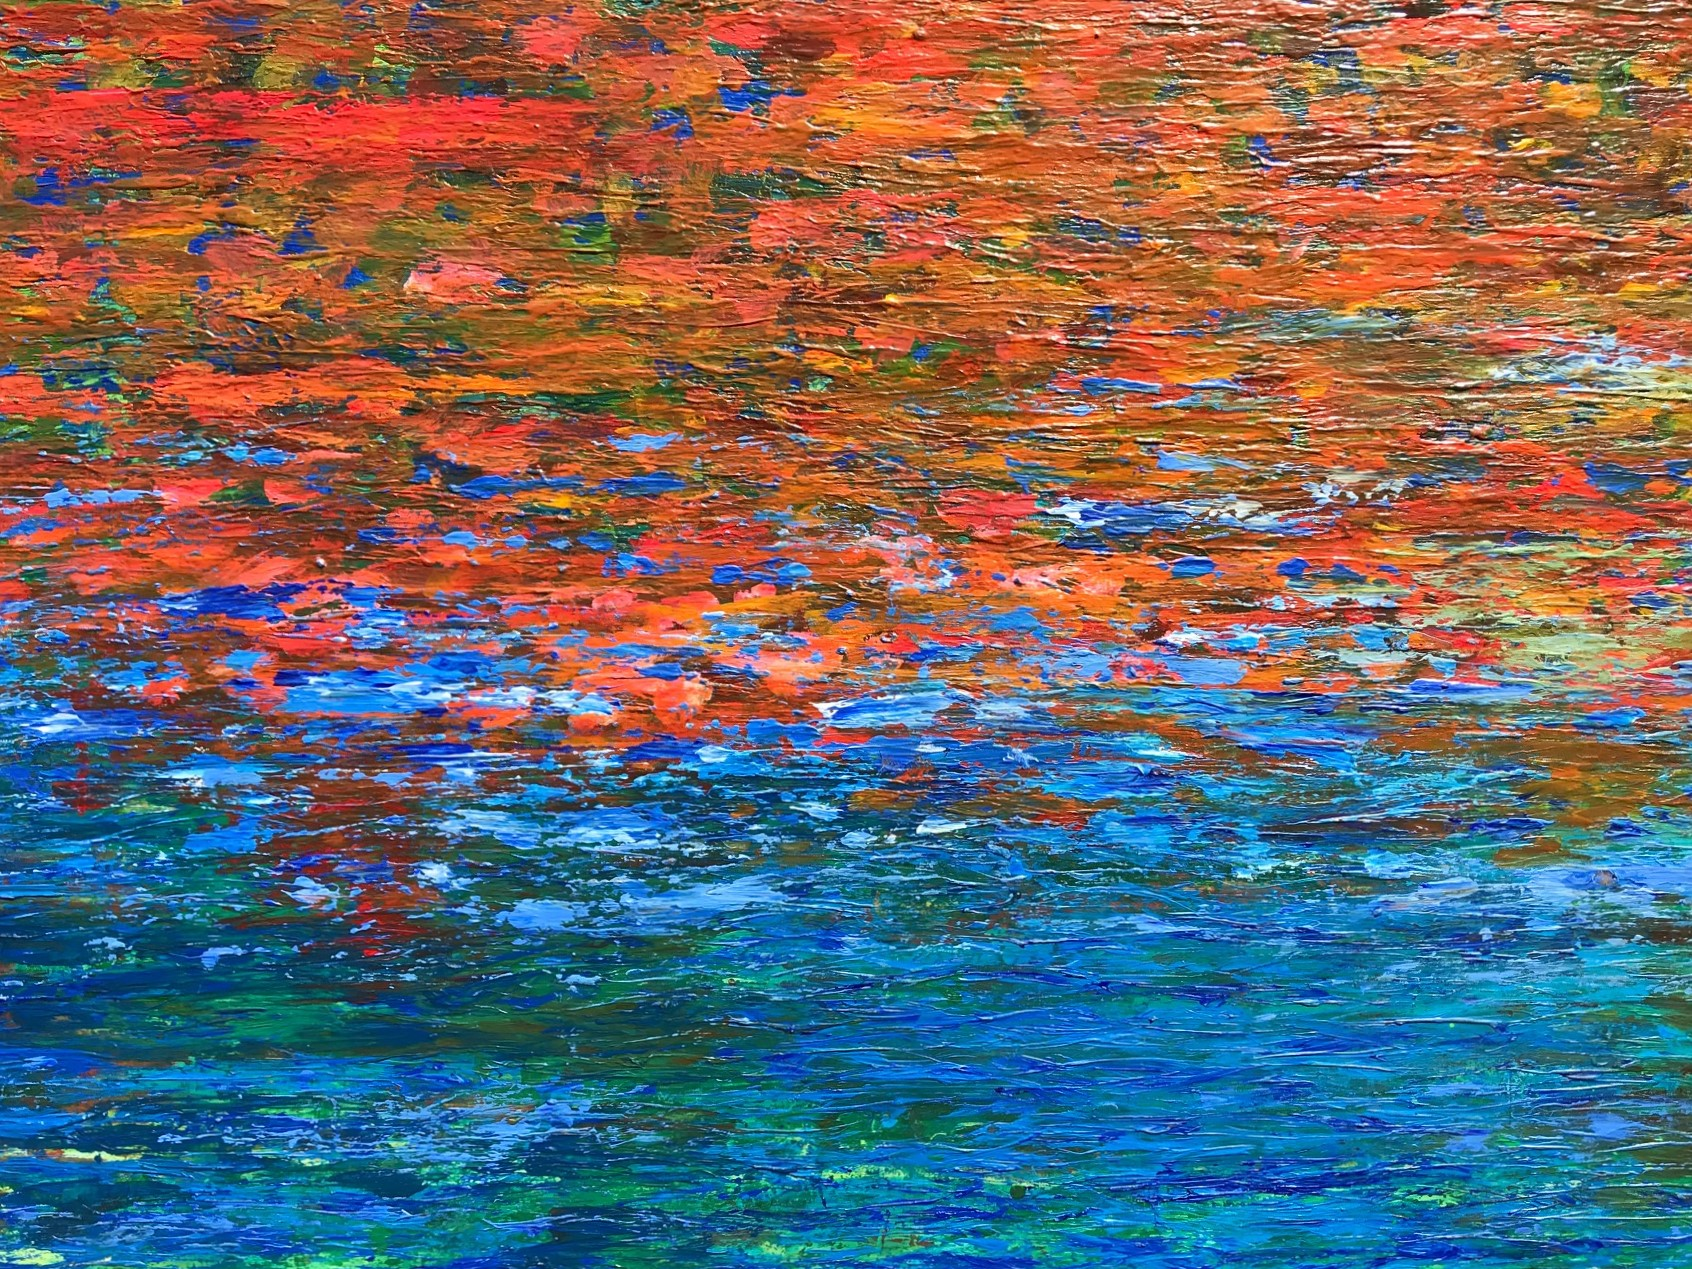 Flow - 2018Acrylic36 x 60 inches£975